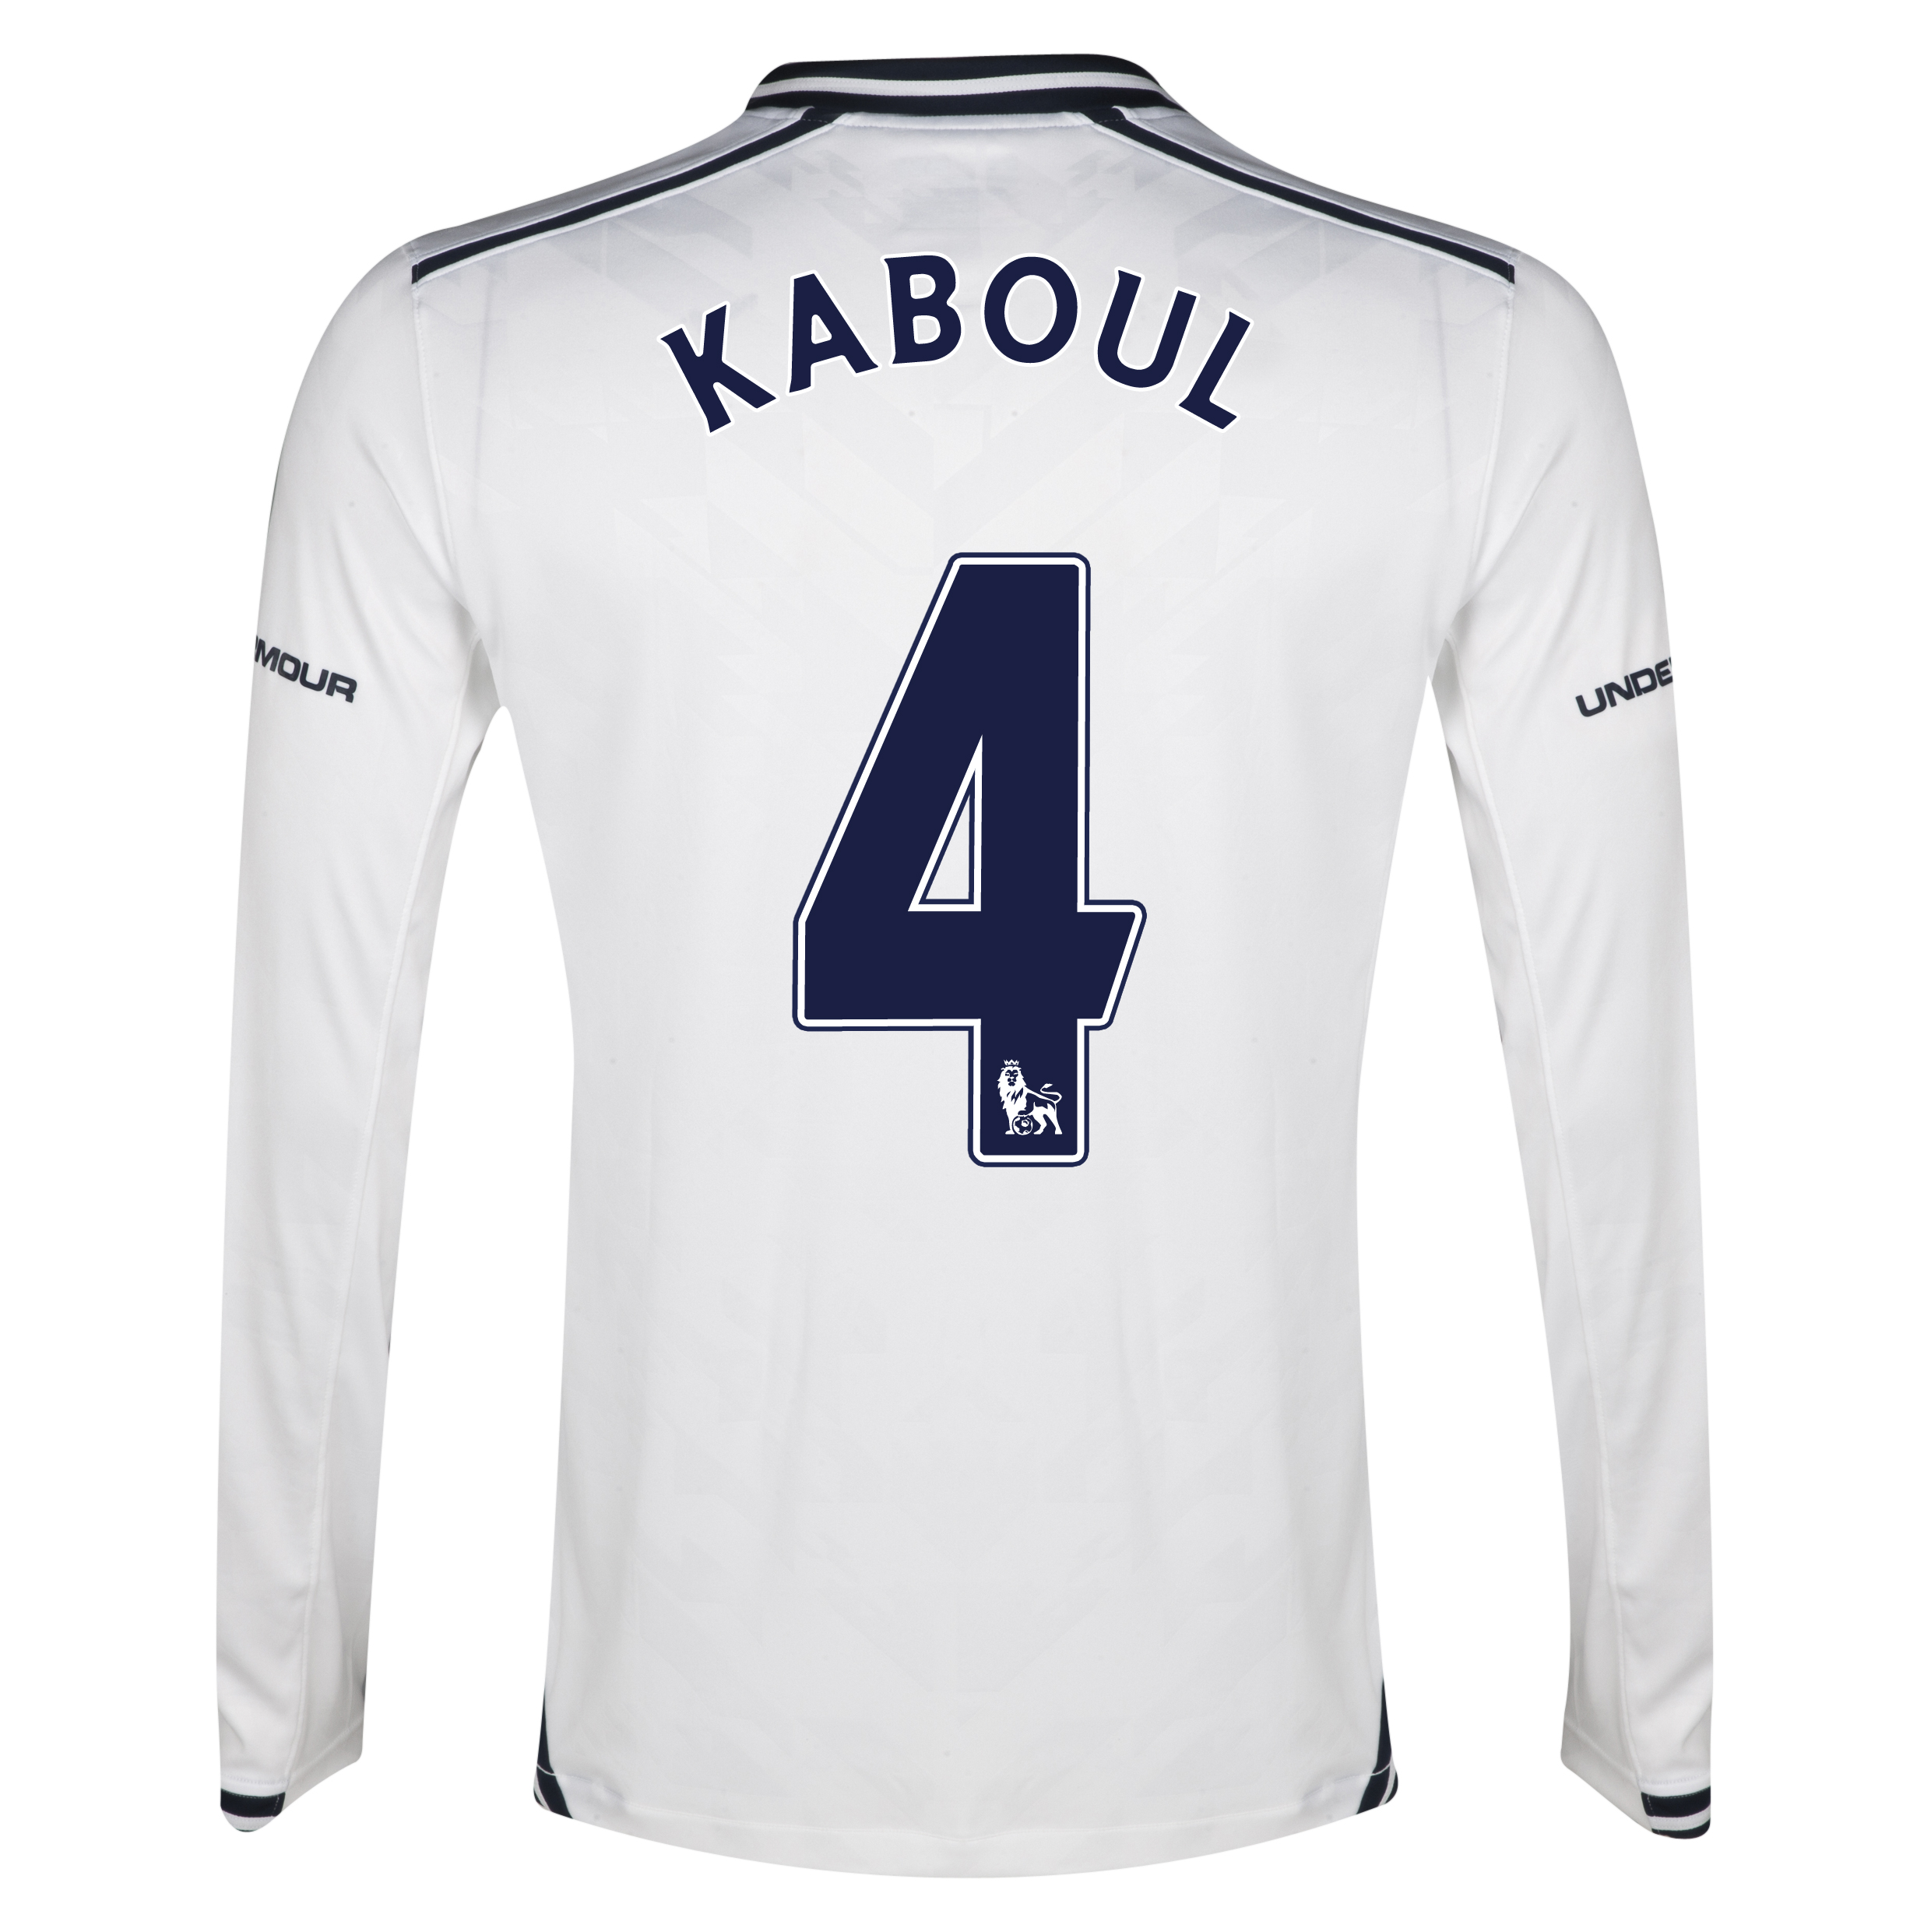 Tottenham Hotspur Home Shirt 2013/14 - Long Sleeve with Kaboul 4 printing